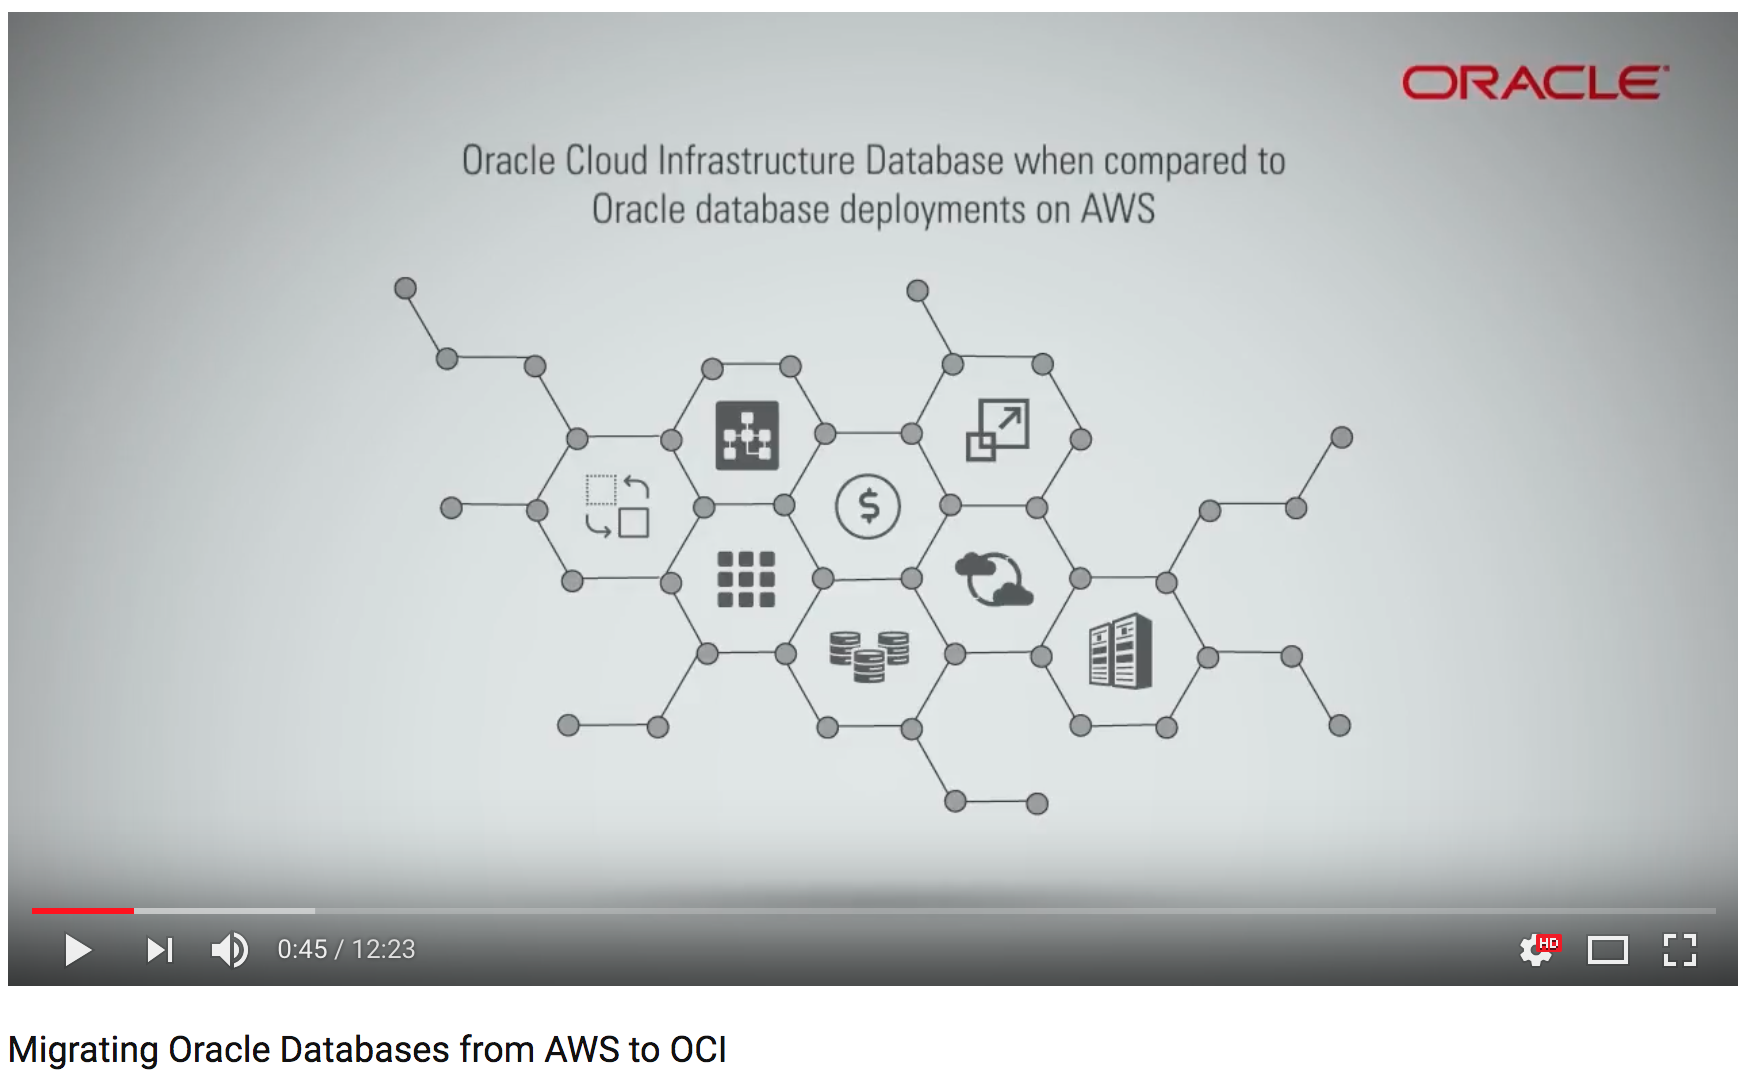 Migrating Oracle Databases from AWS to OCI!! By Oracle